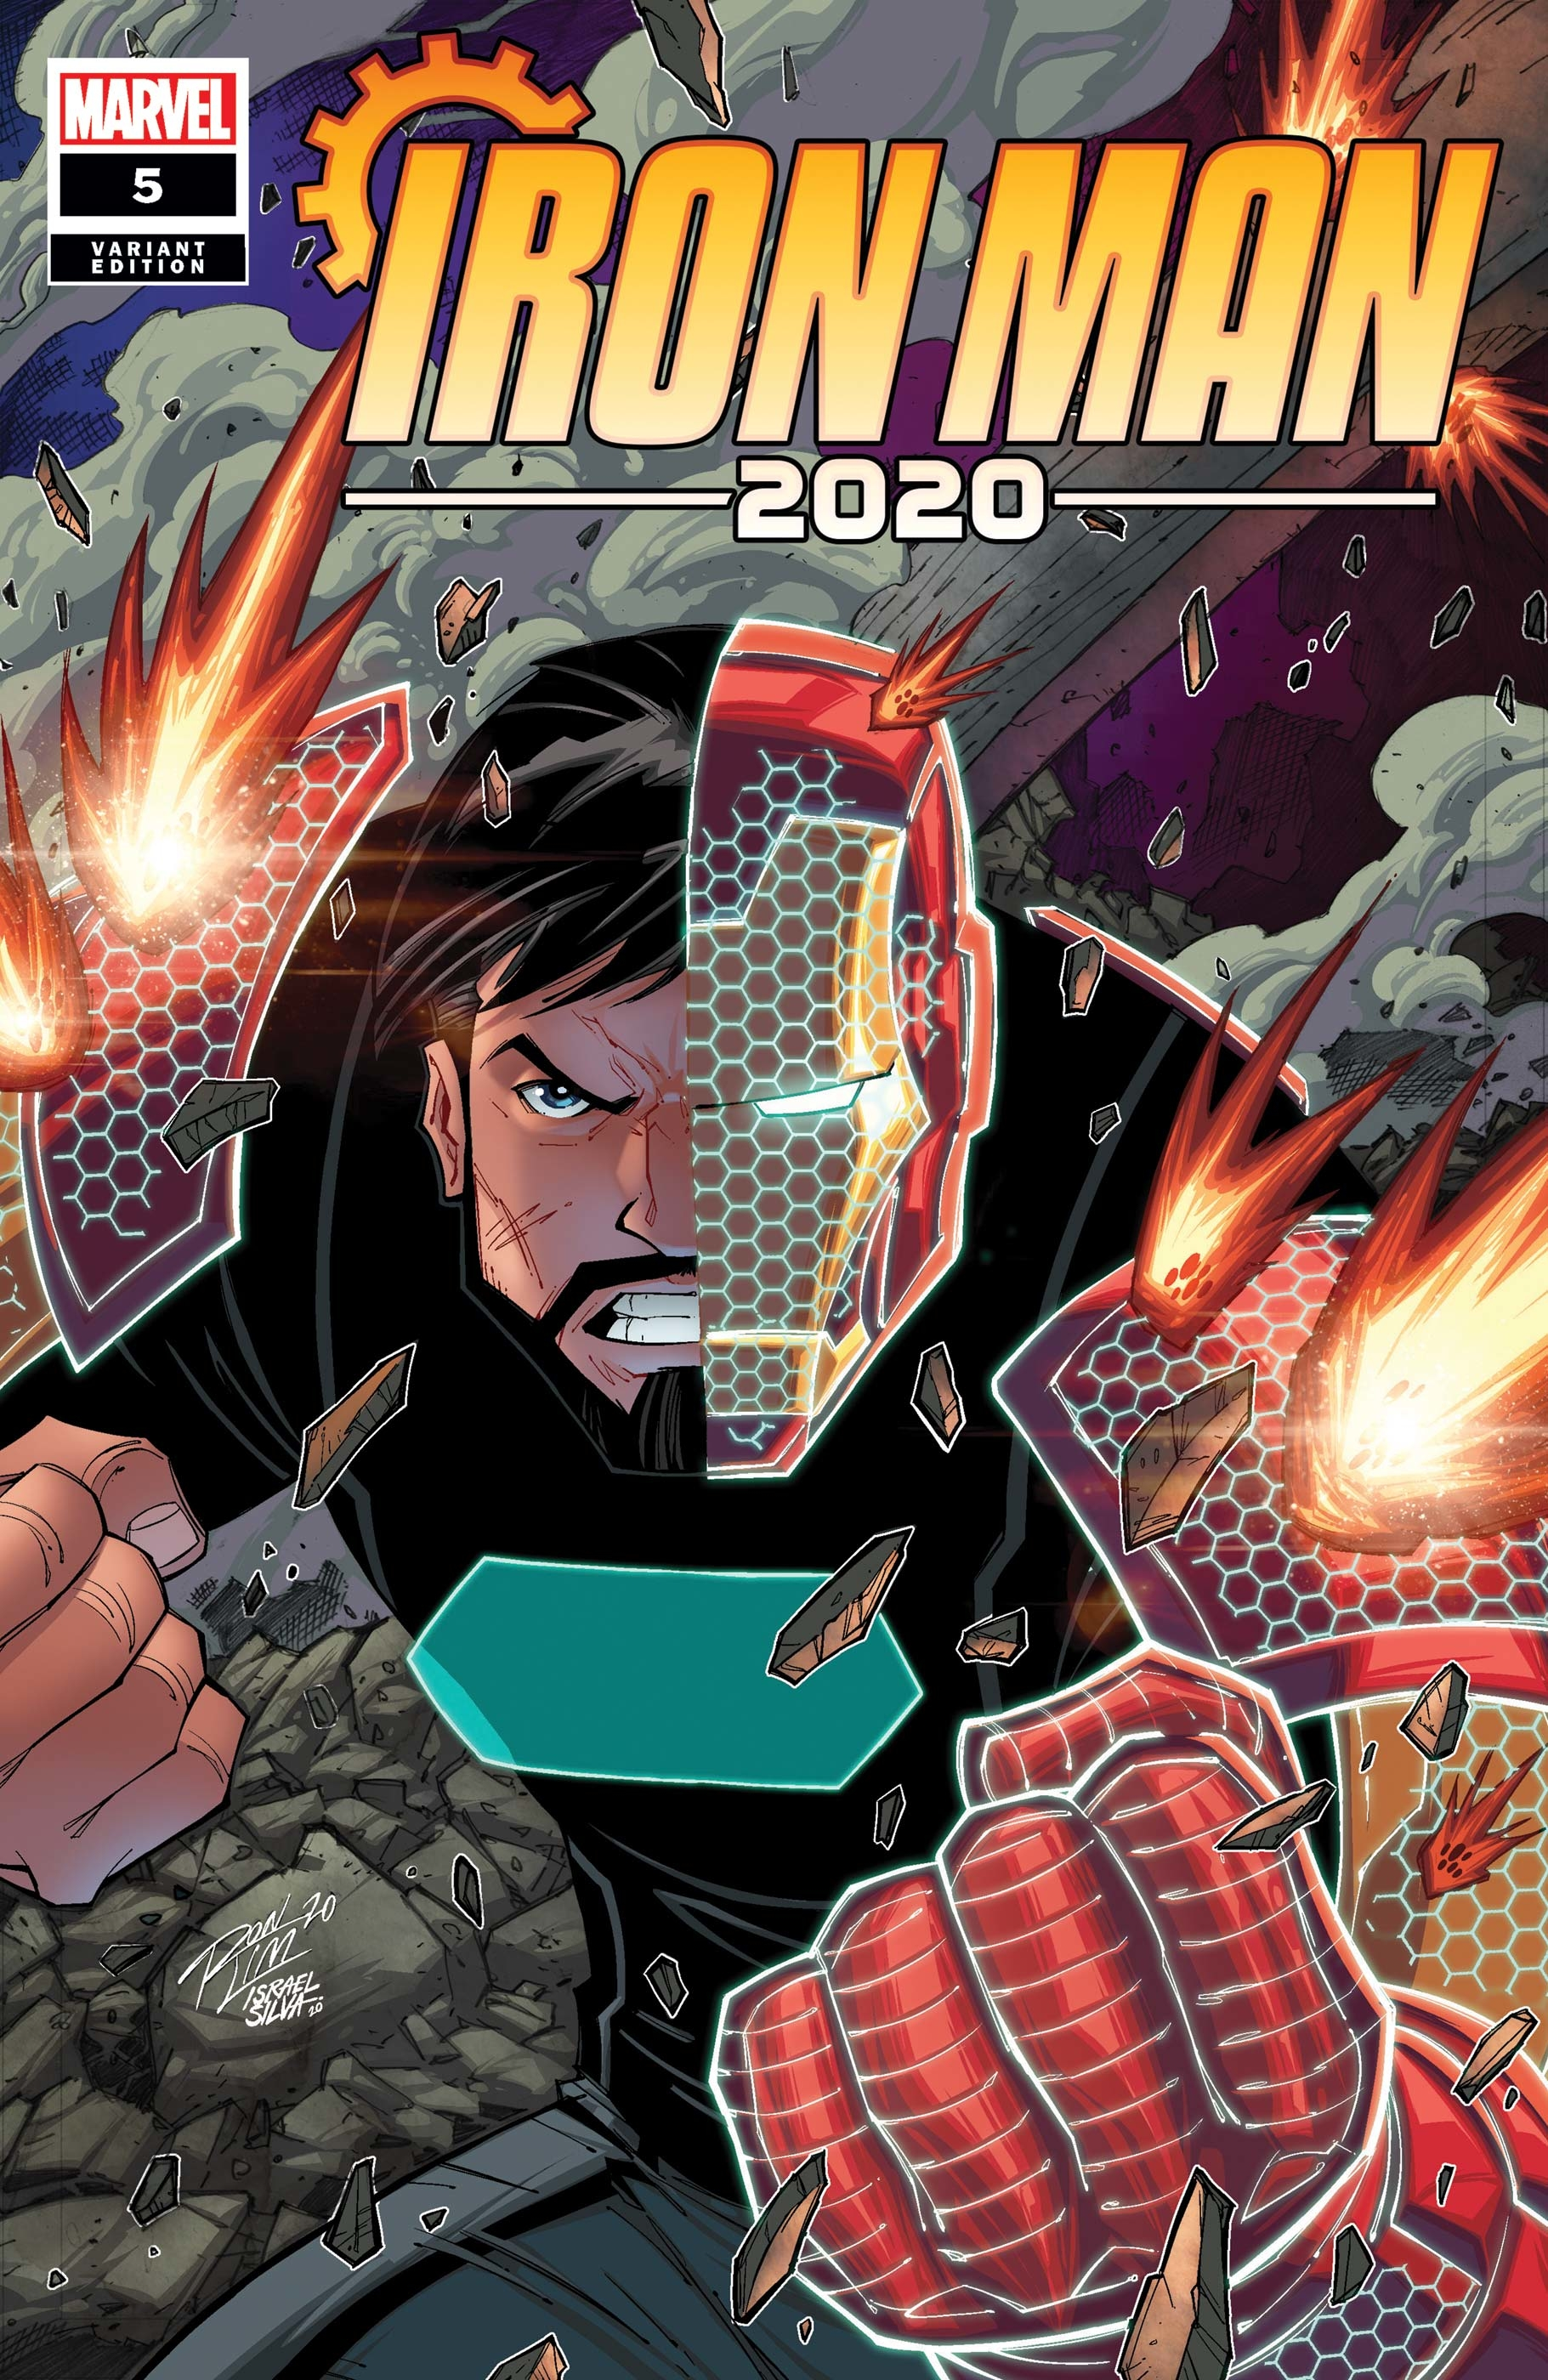 IRON MAN 2020 #5 (OF 6) RON LIM VAR